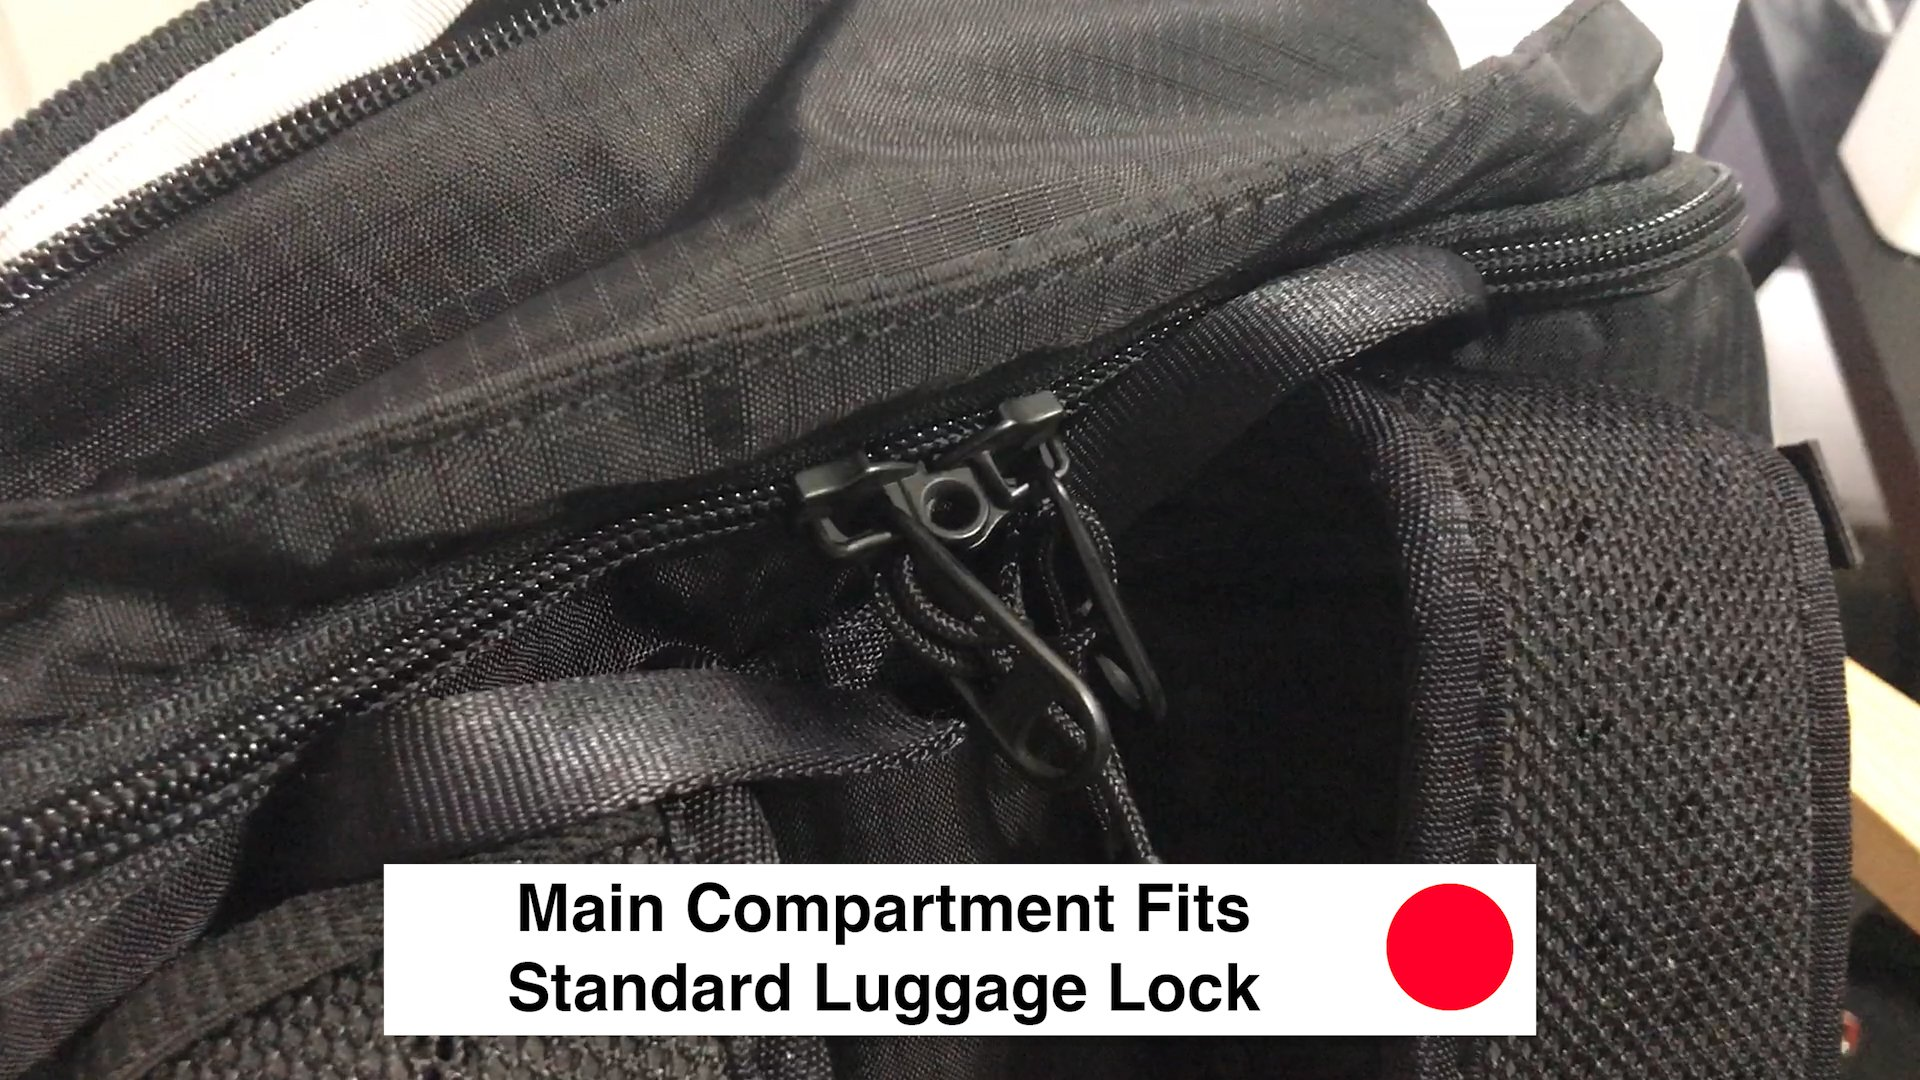 Main Compartment Fits Standard Luggage Lock - Pacsafe Venturesafe X30 Travel Pack - Black Anti Theft Backpack